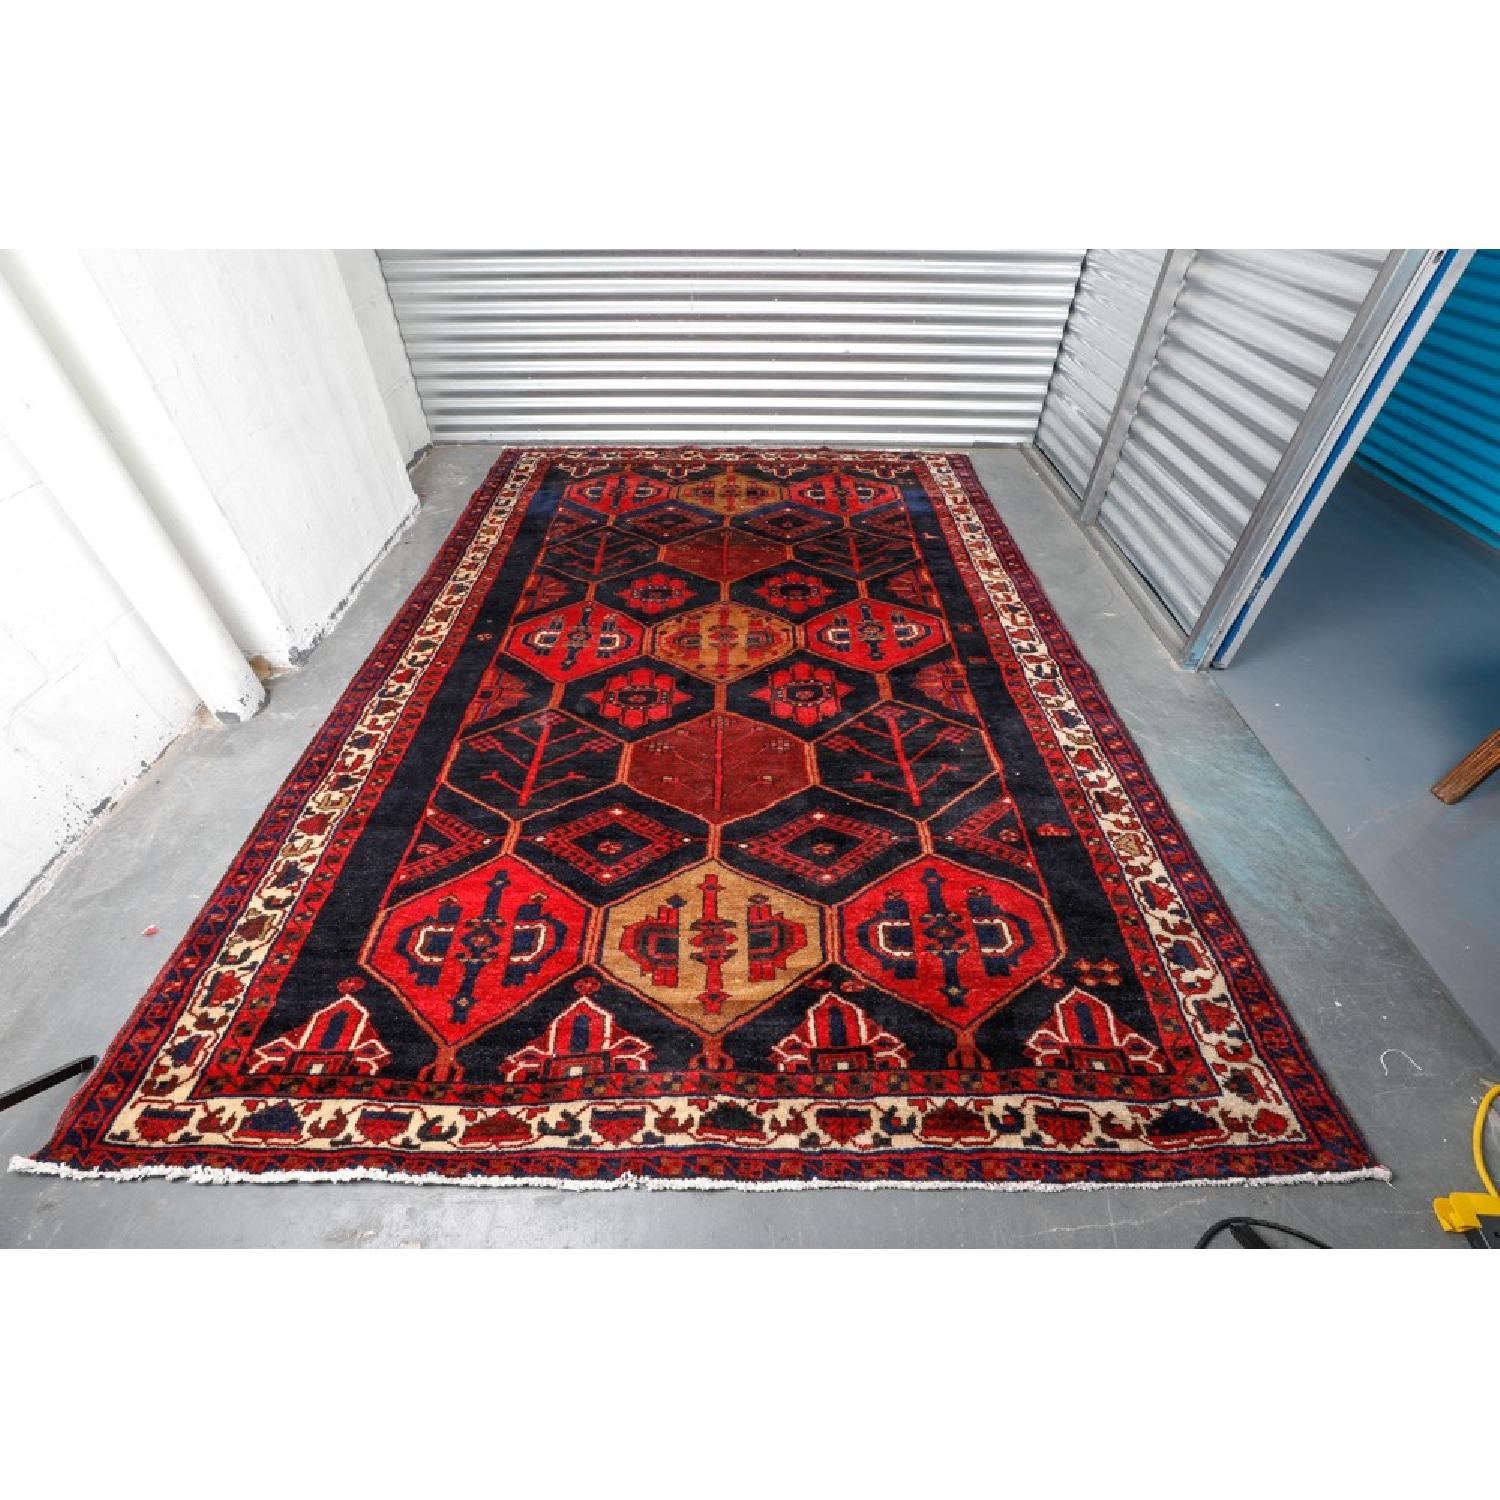 ABC Carpet and Home Patterned Area Rug-2